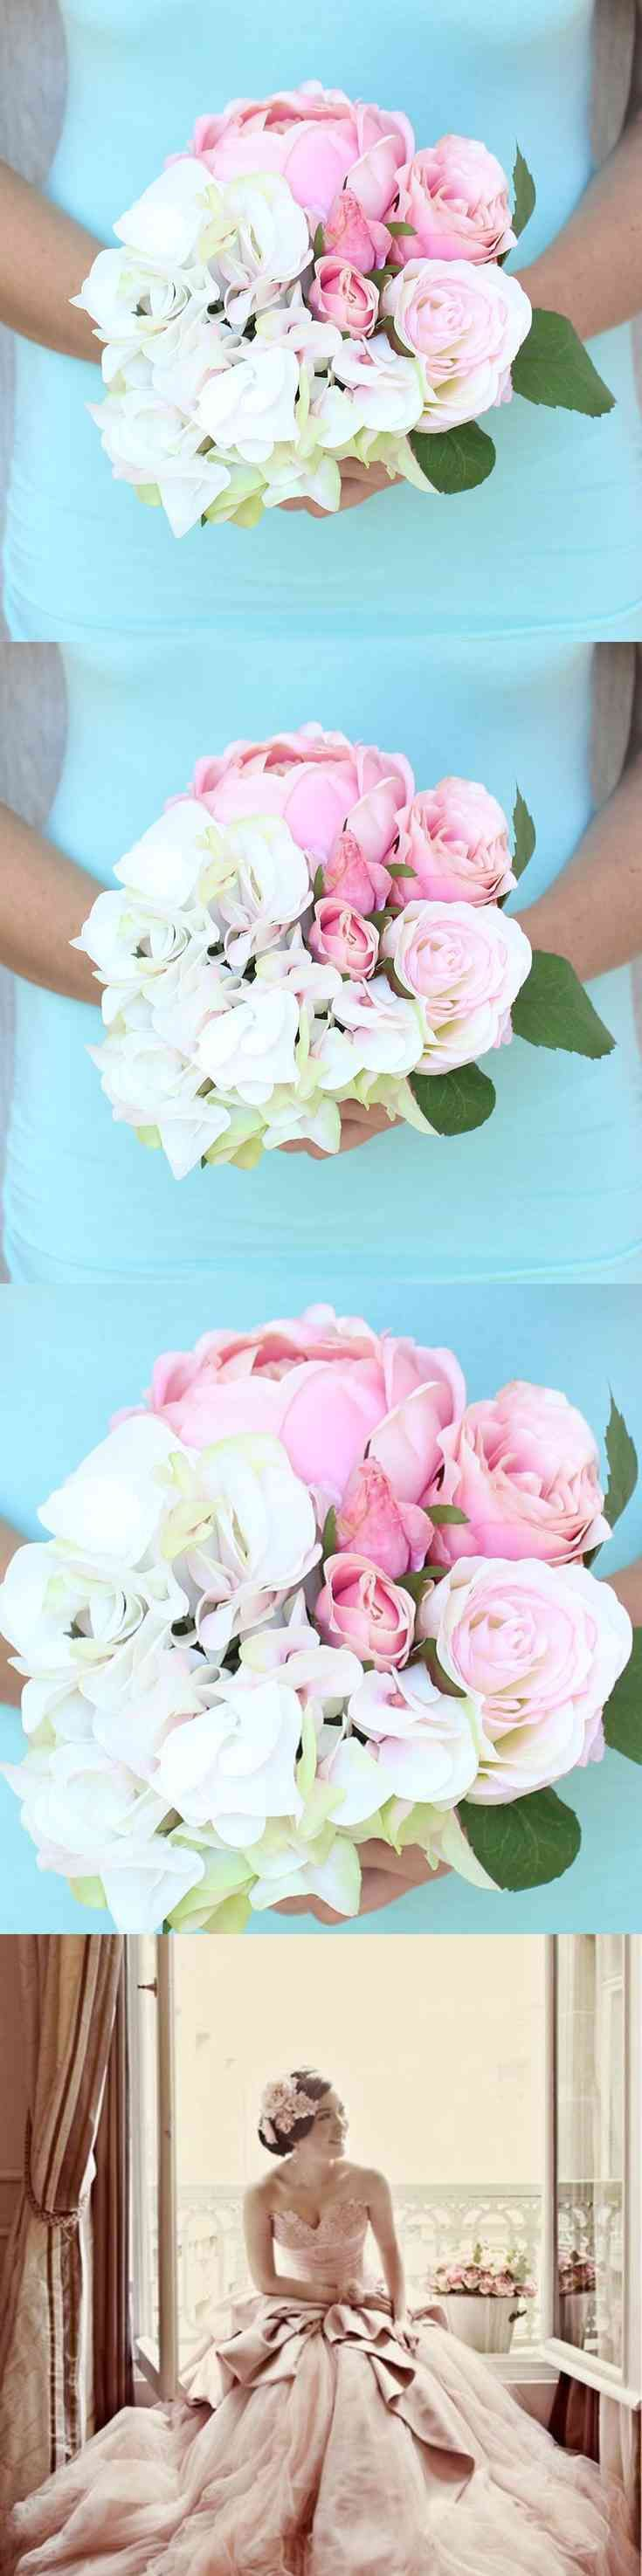 What a wonderful time for a spring wedding this Stunning Spring Bridal Bouquet, Wedding Bouquet, is created with Silk Hydrangeas, Roses and Peony together with real touch roses,  each stem is wrapped with floral tape for uniform and clean  finished look adorned with a brooch of your choice Silver, Pearl, Pink, and ribbon. Bridal Sets, Cream, Soft and Stunning (...) (via pushapin.com)